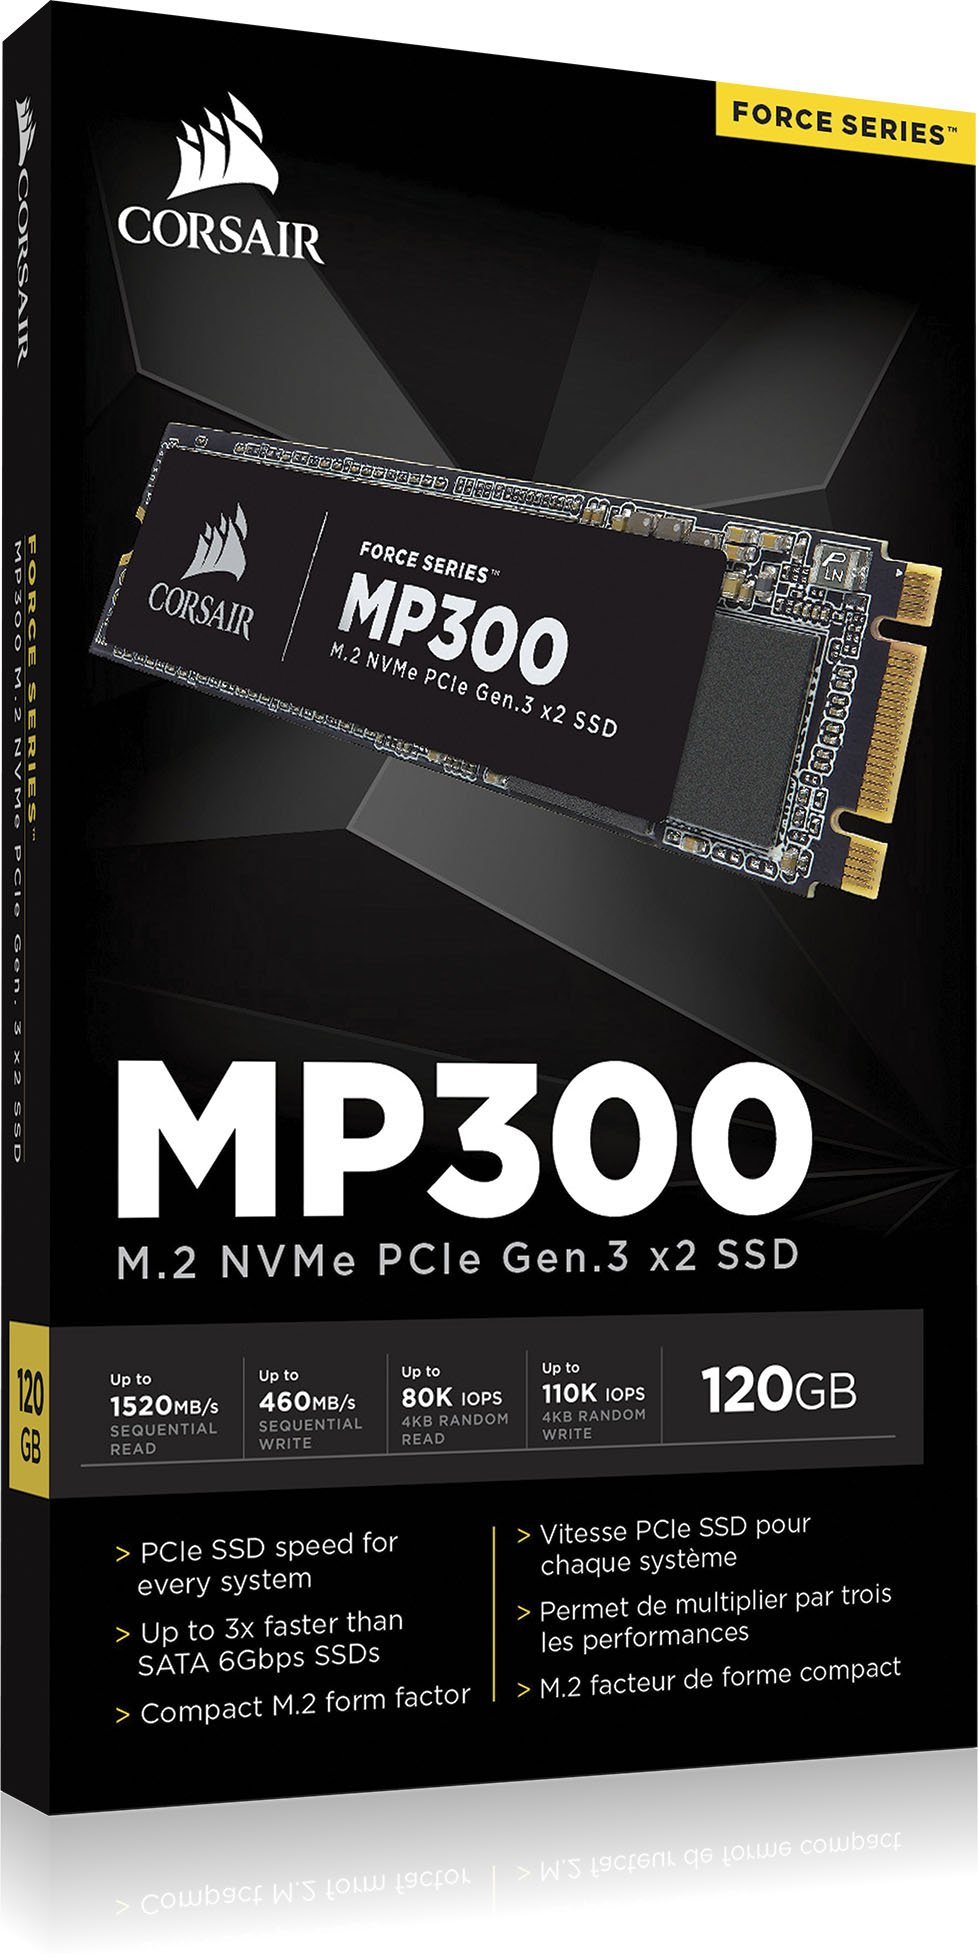 Computer_Drive_OR_Storage 7 High-speed NVMe PCI Express Gen 3 x2 Interface for speeds up to 1600MB/sec, 3x faster 6Gbps Utilizing state-of-the art, high-density 3D TLC NAND for the ideal mix of performance, endurance and value Compact M.2 2280 industry standard form factor fits directly into your notebook or motherboard